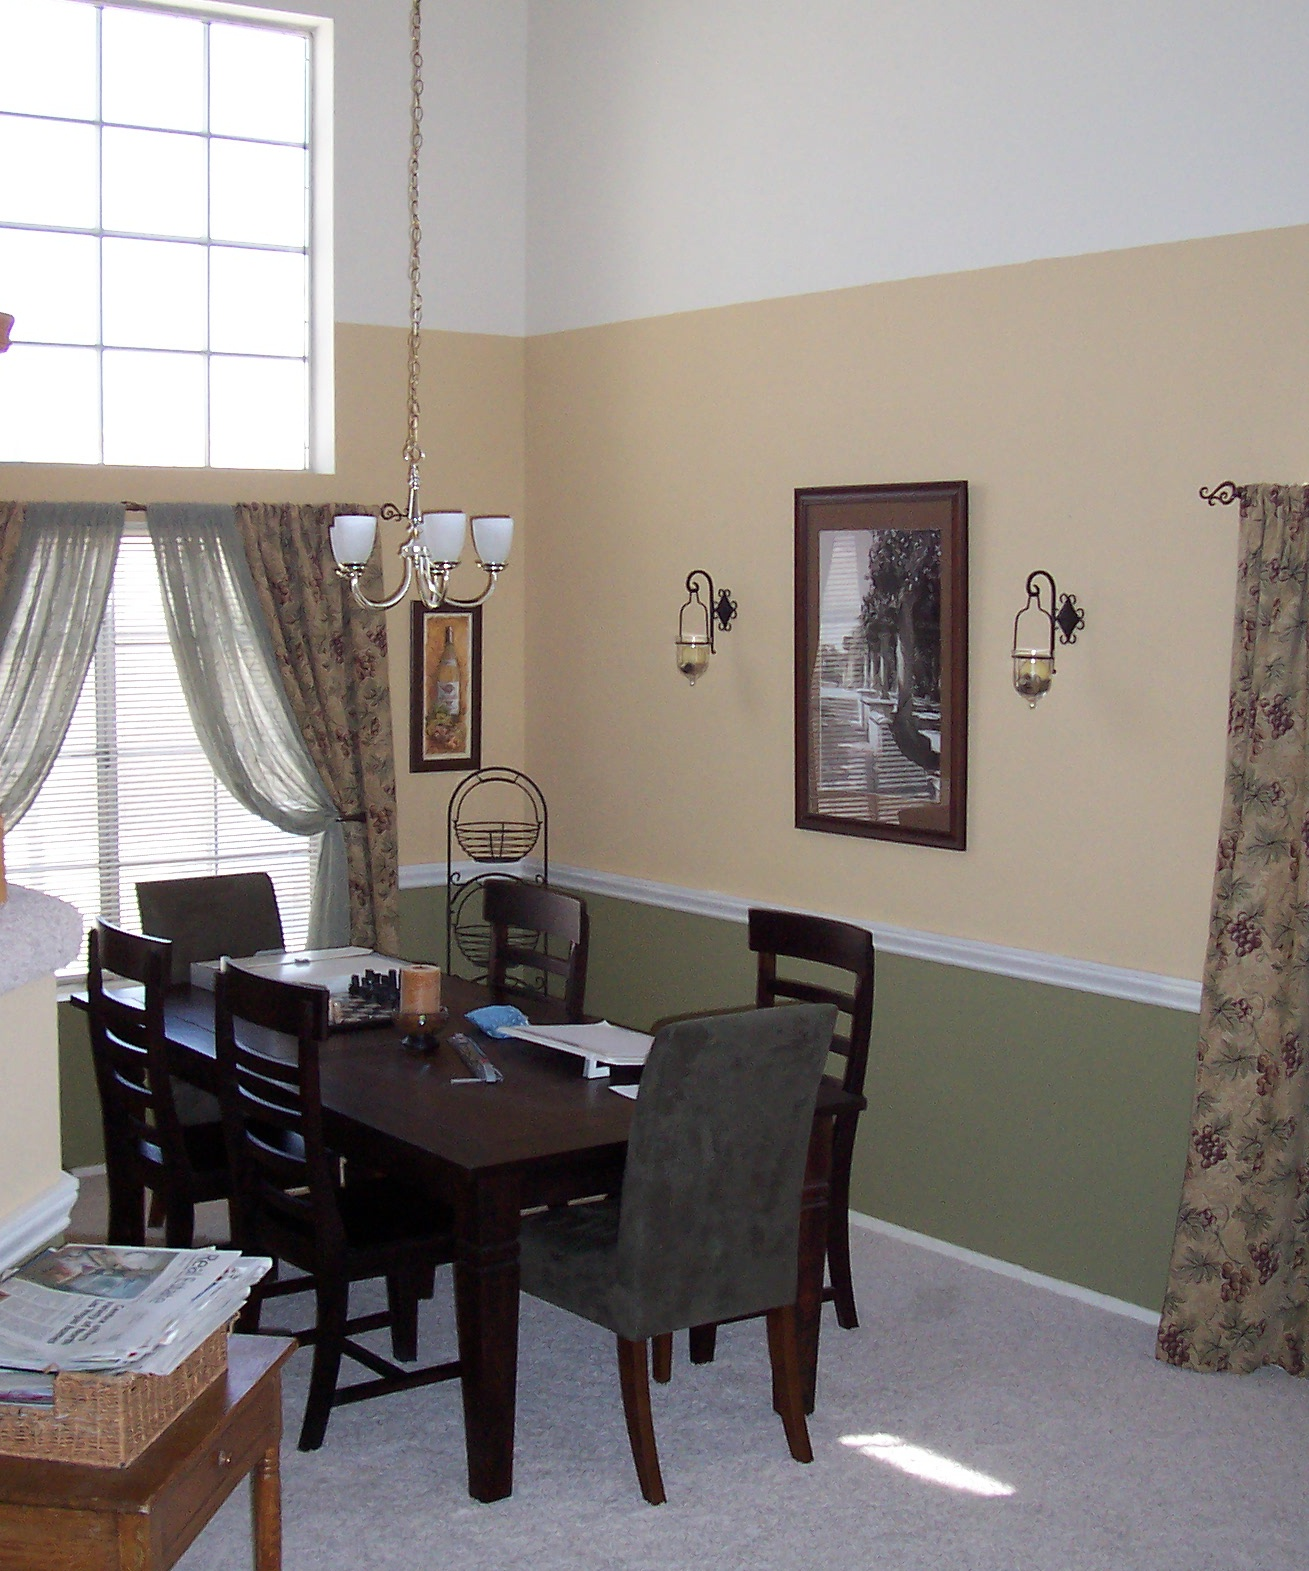 Dining Room Paint Ideas With Chair Rail: Eclectic Designs By Erin: Add Chair Rail To Break Up Tall